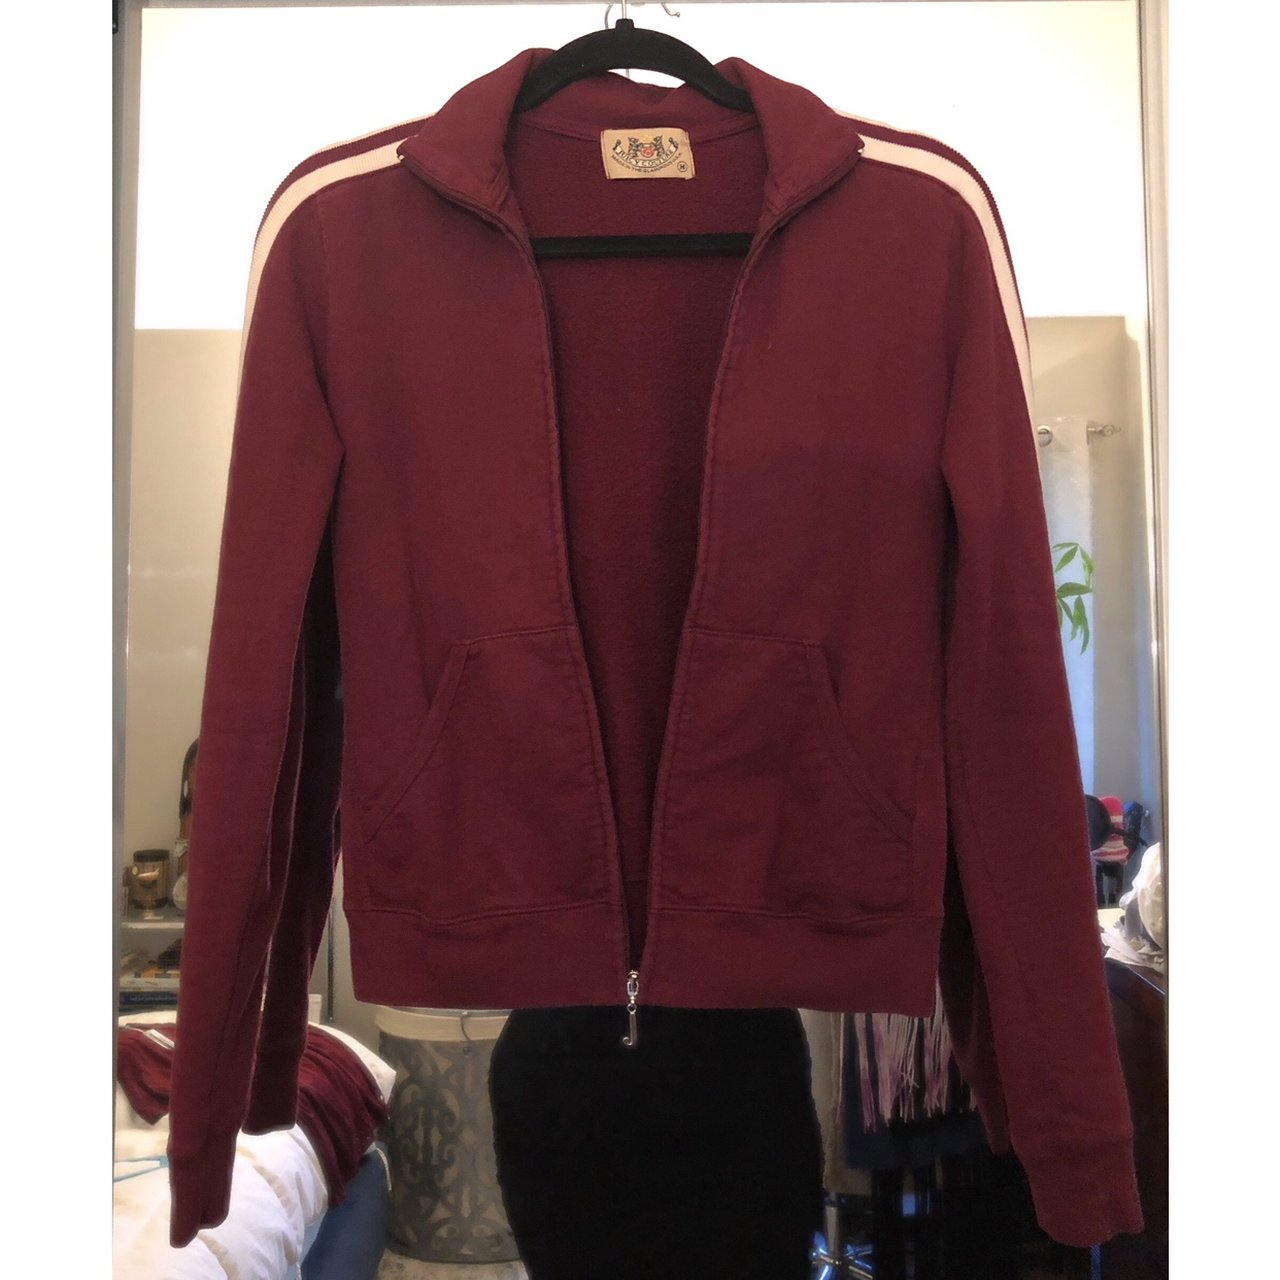 21e2336f9dc4 Burgundy Juicy Couture Sport Jacket M - Depop